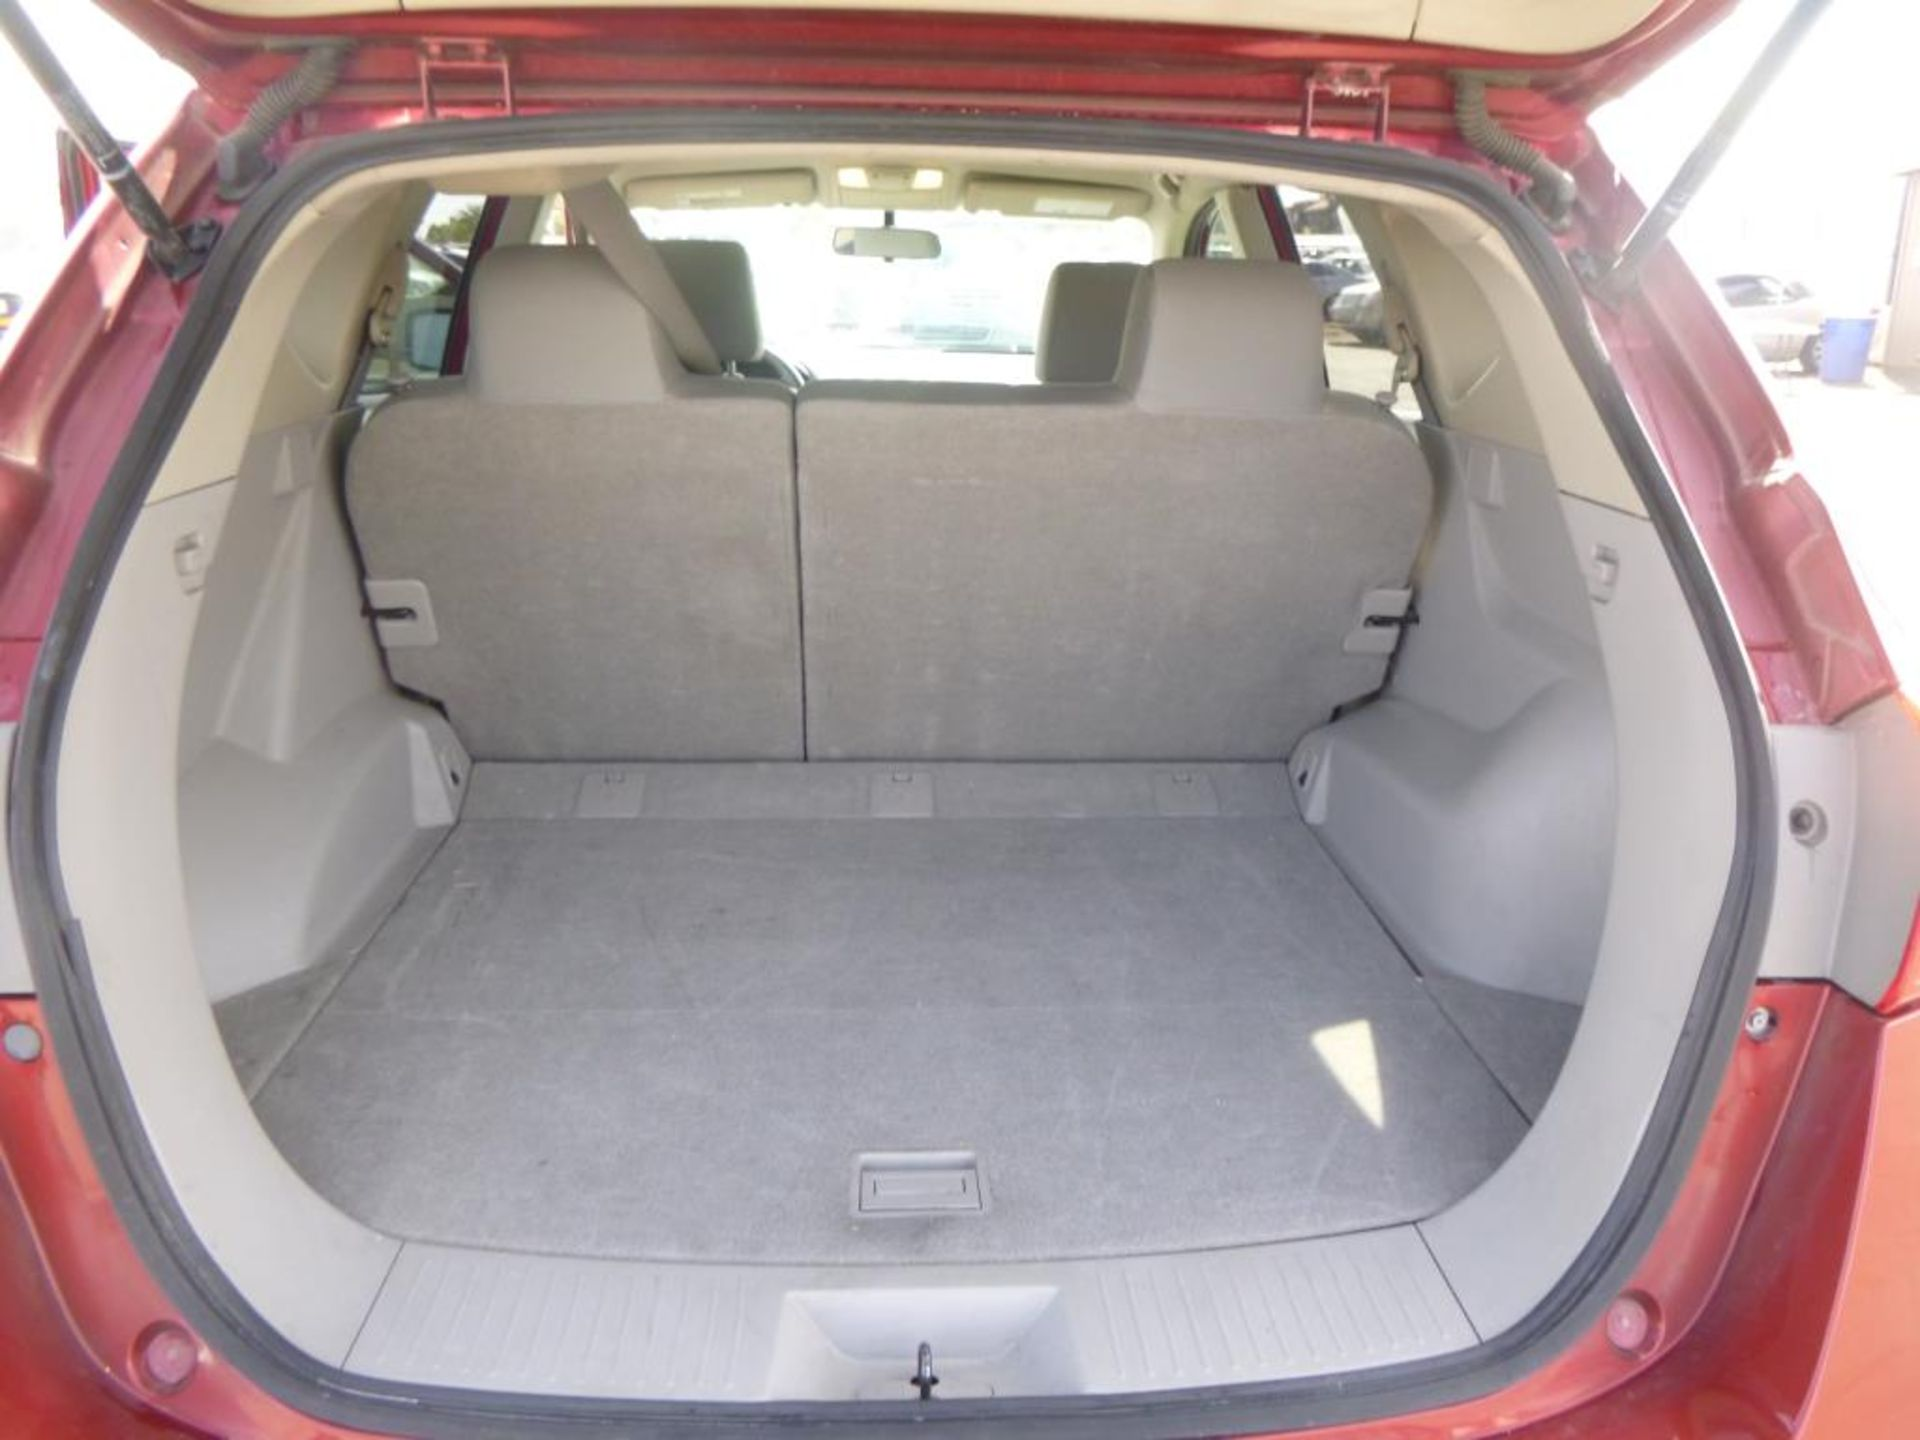 2012 Nissan Rogue - Image 6 of 14